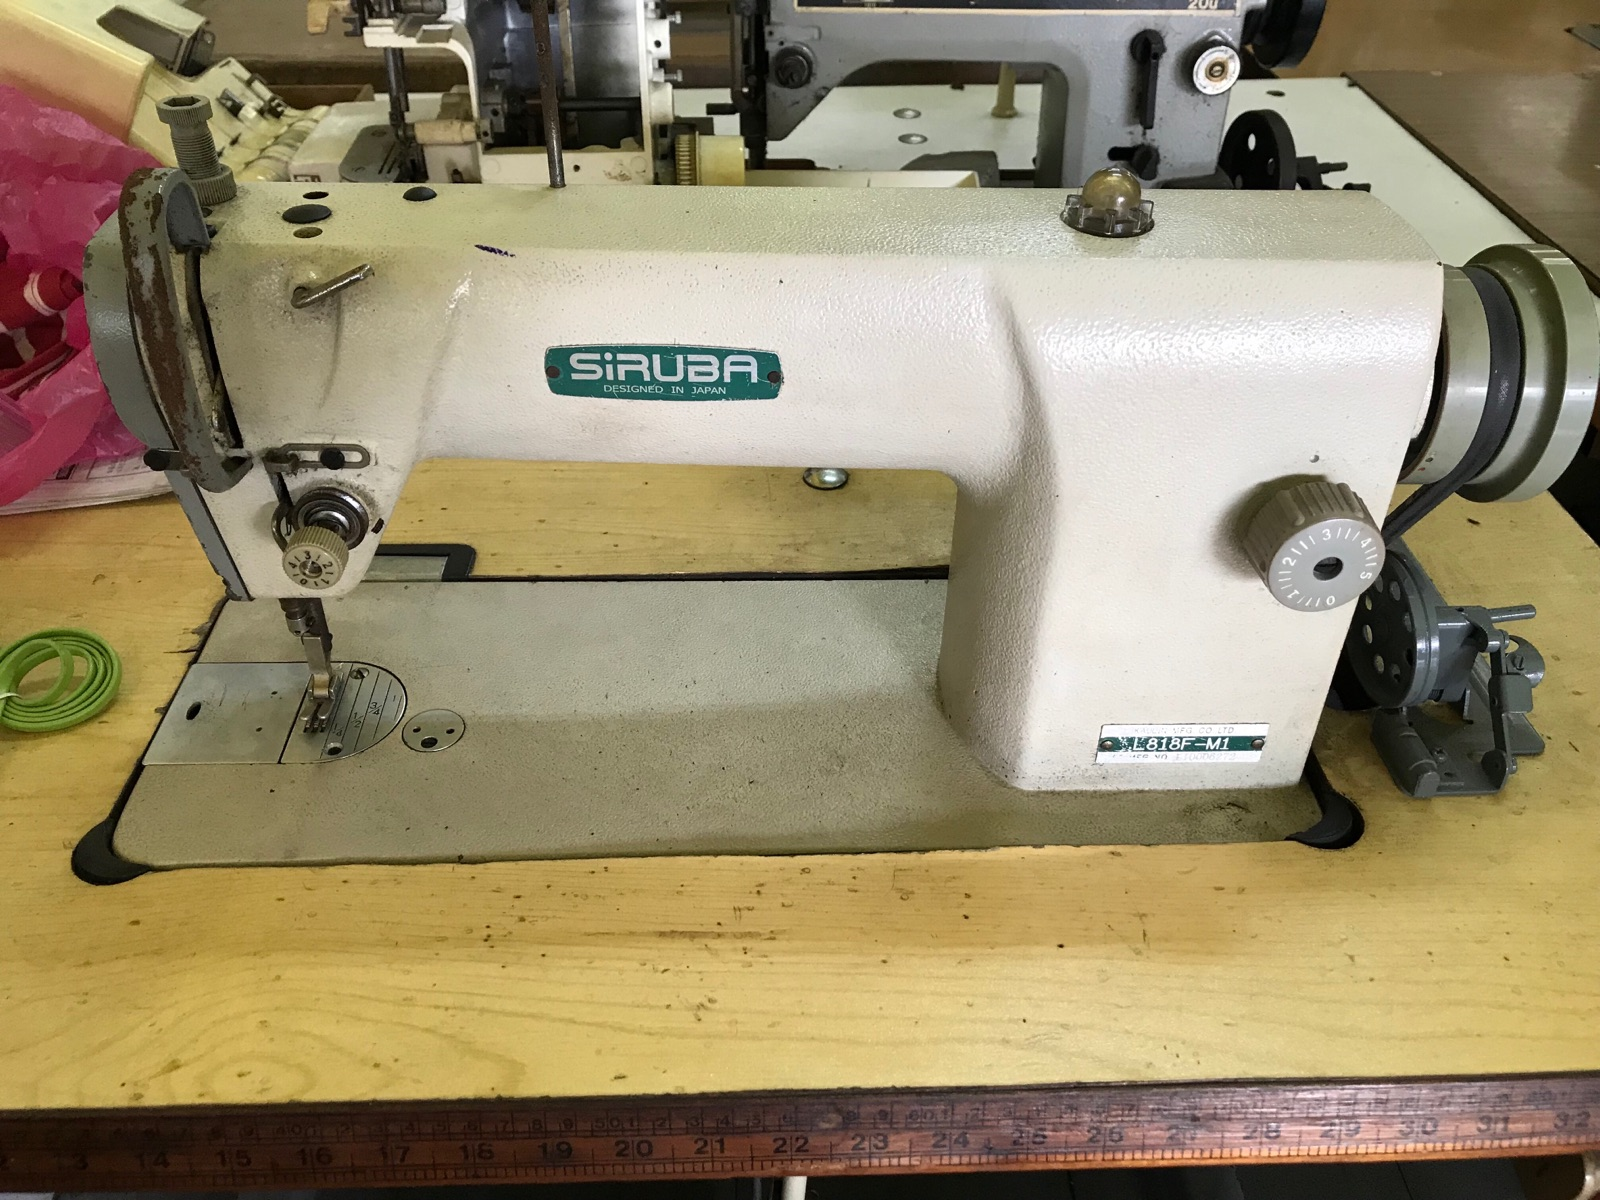 2nd Siruba Hi Speed Sewing Machine